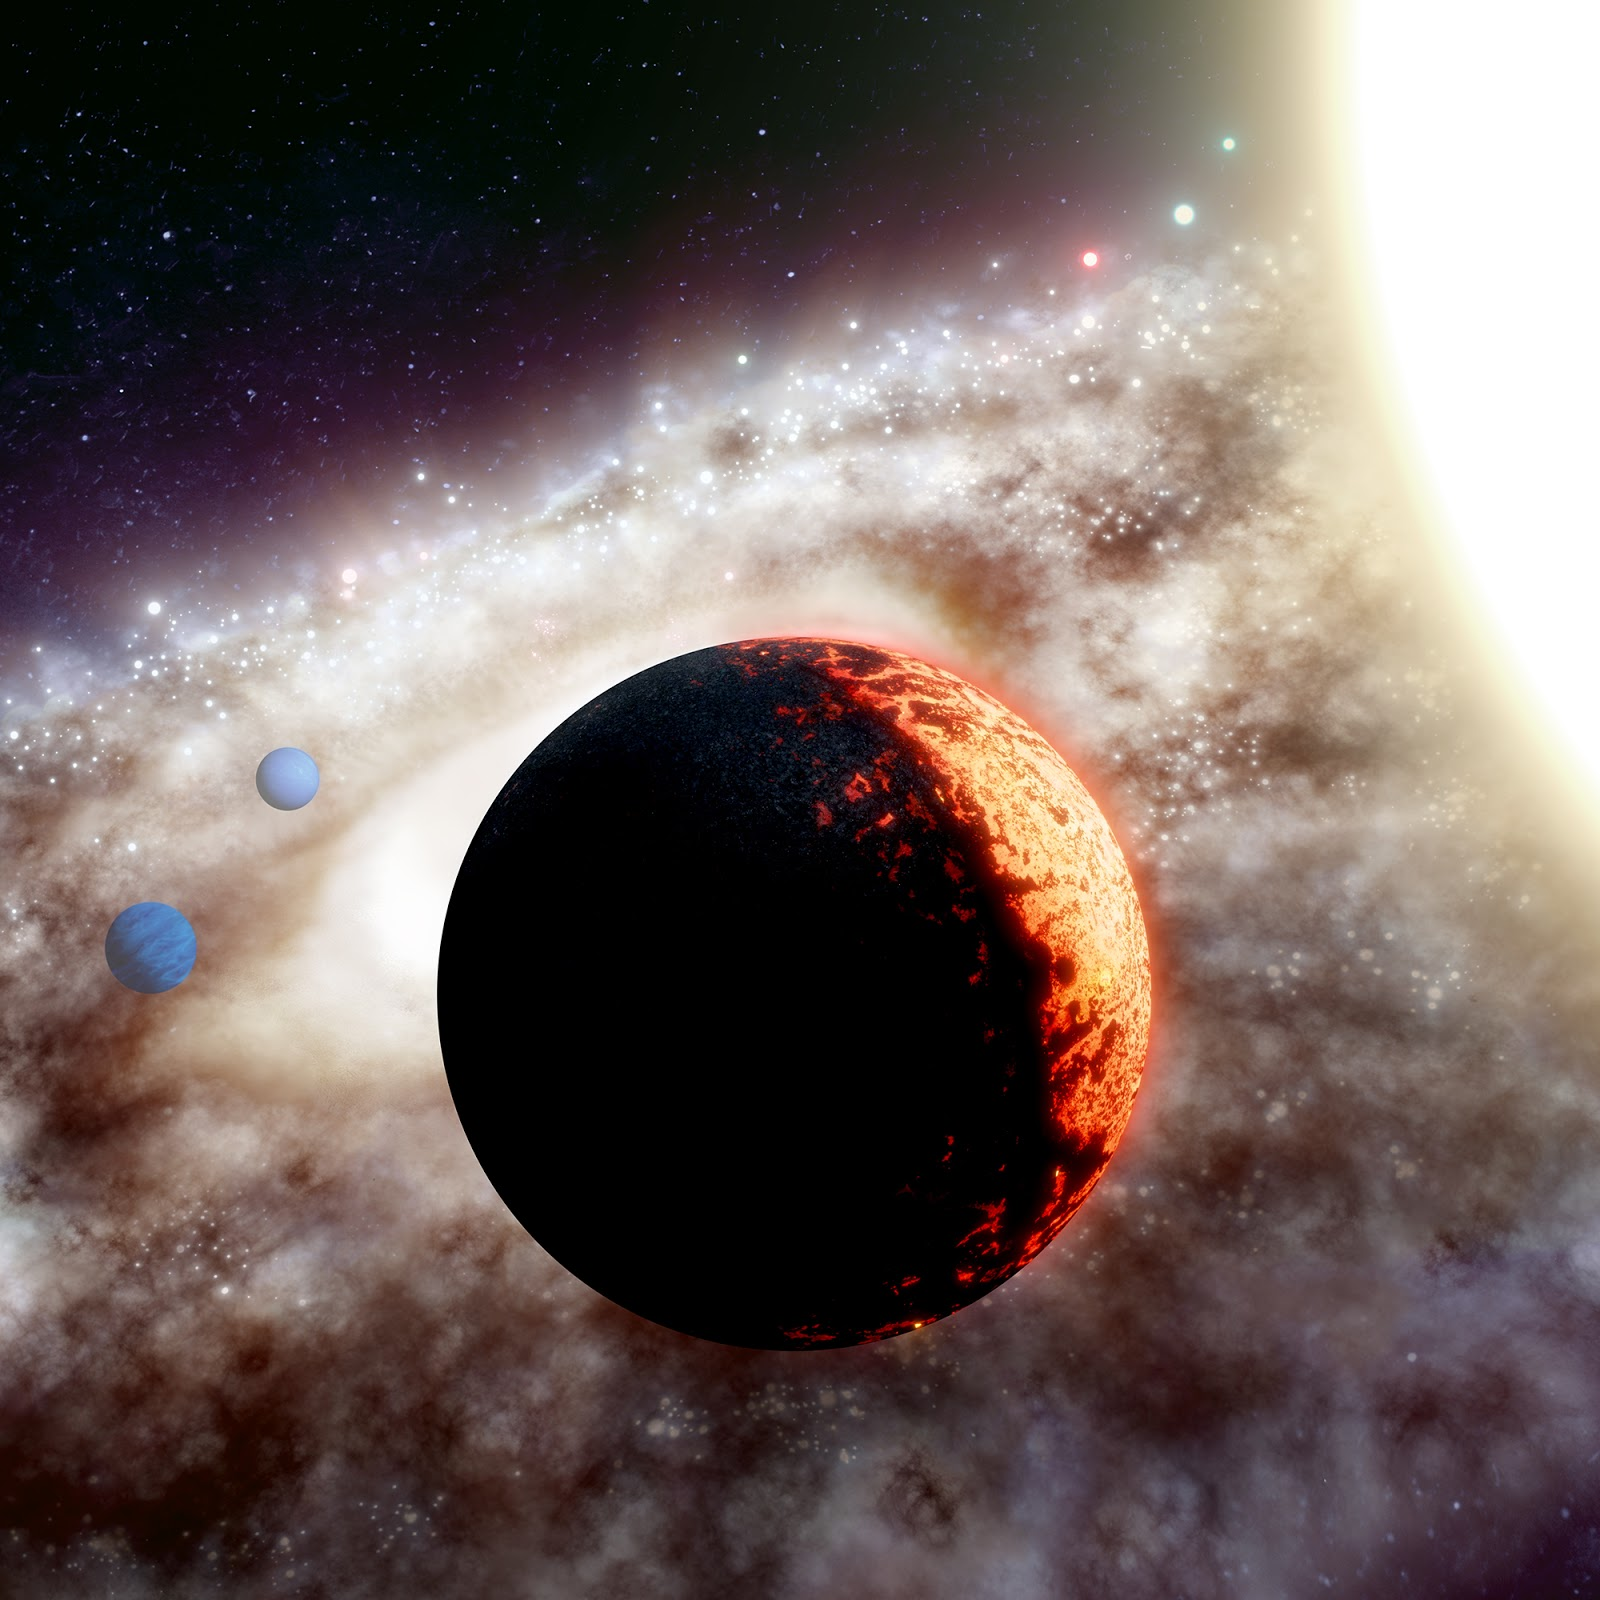 Artist's impression of TOI-561, a star system 280 light-years from Earth